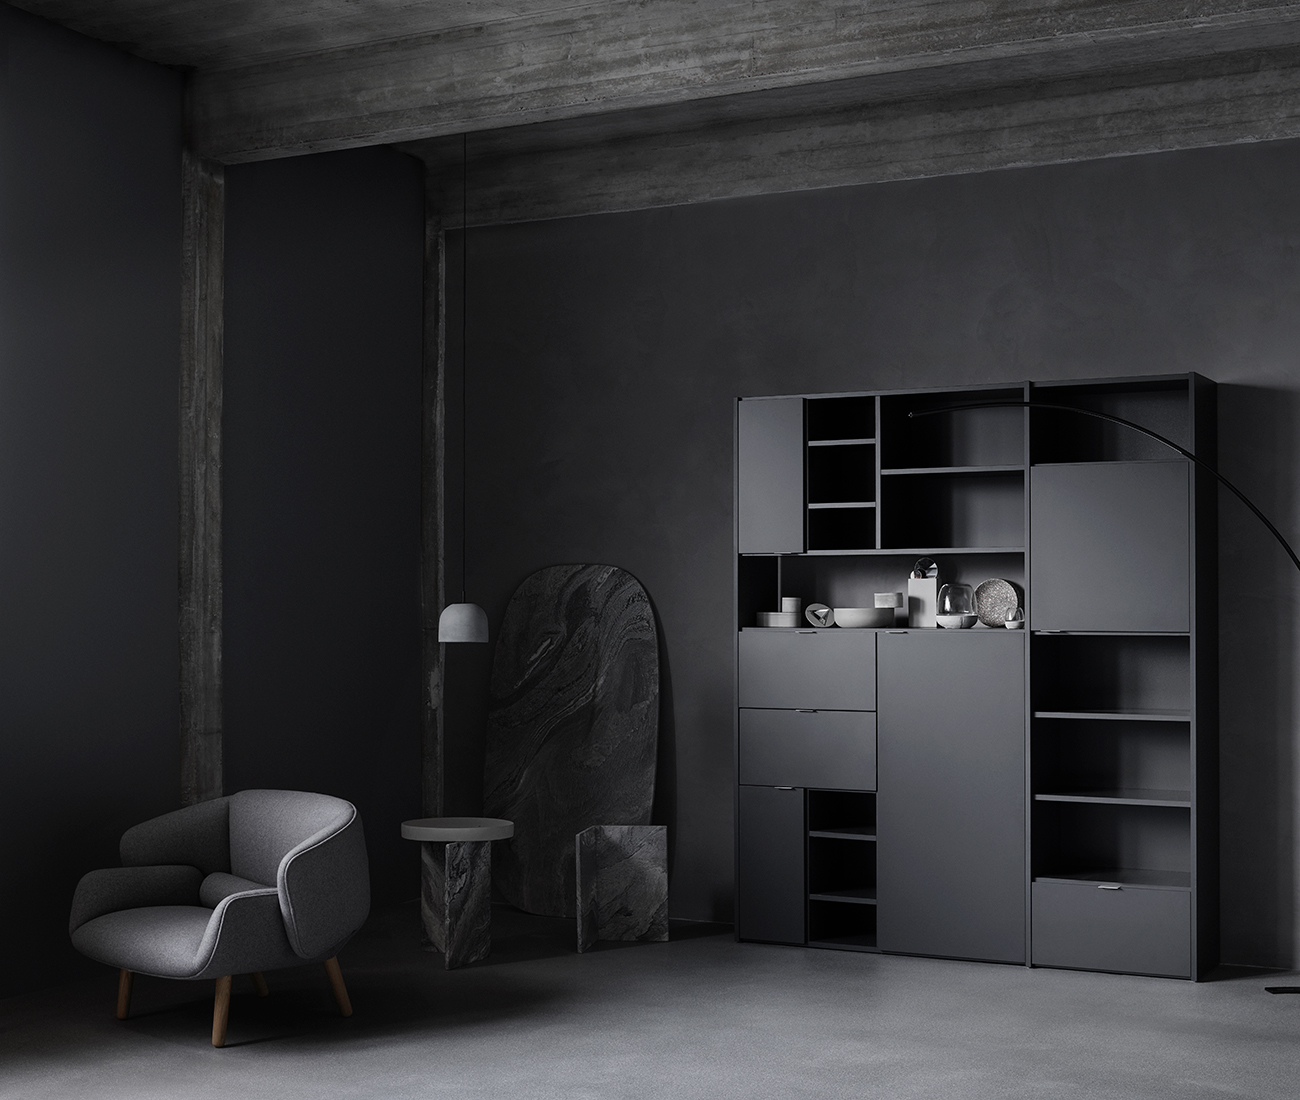 Dark living room inspiration with black Copenhagen wall system